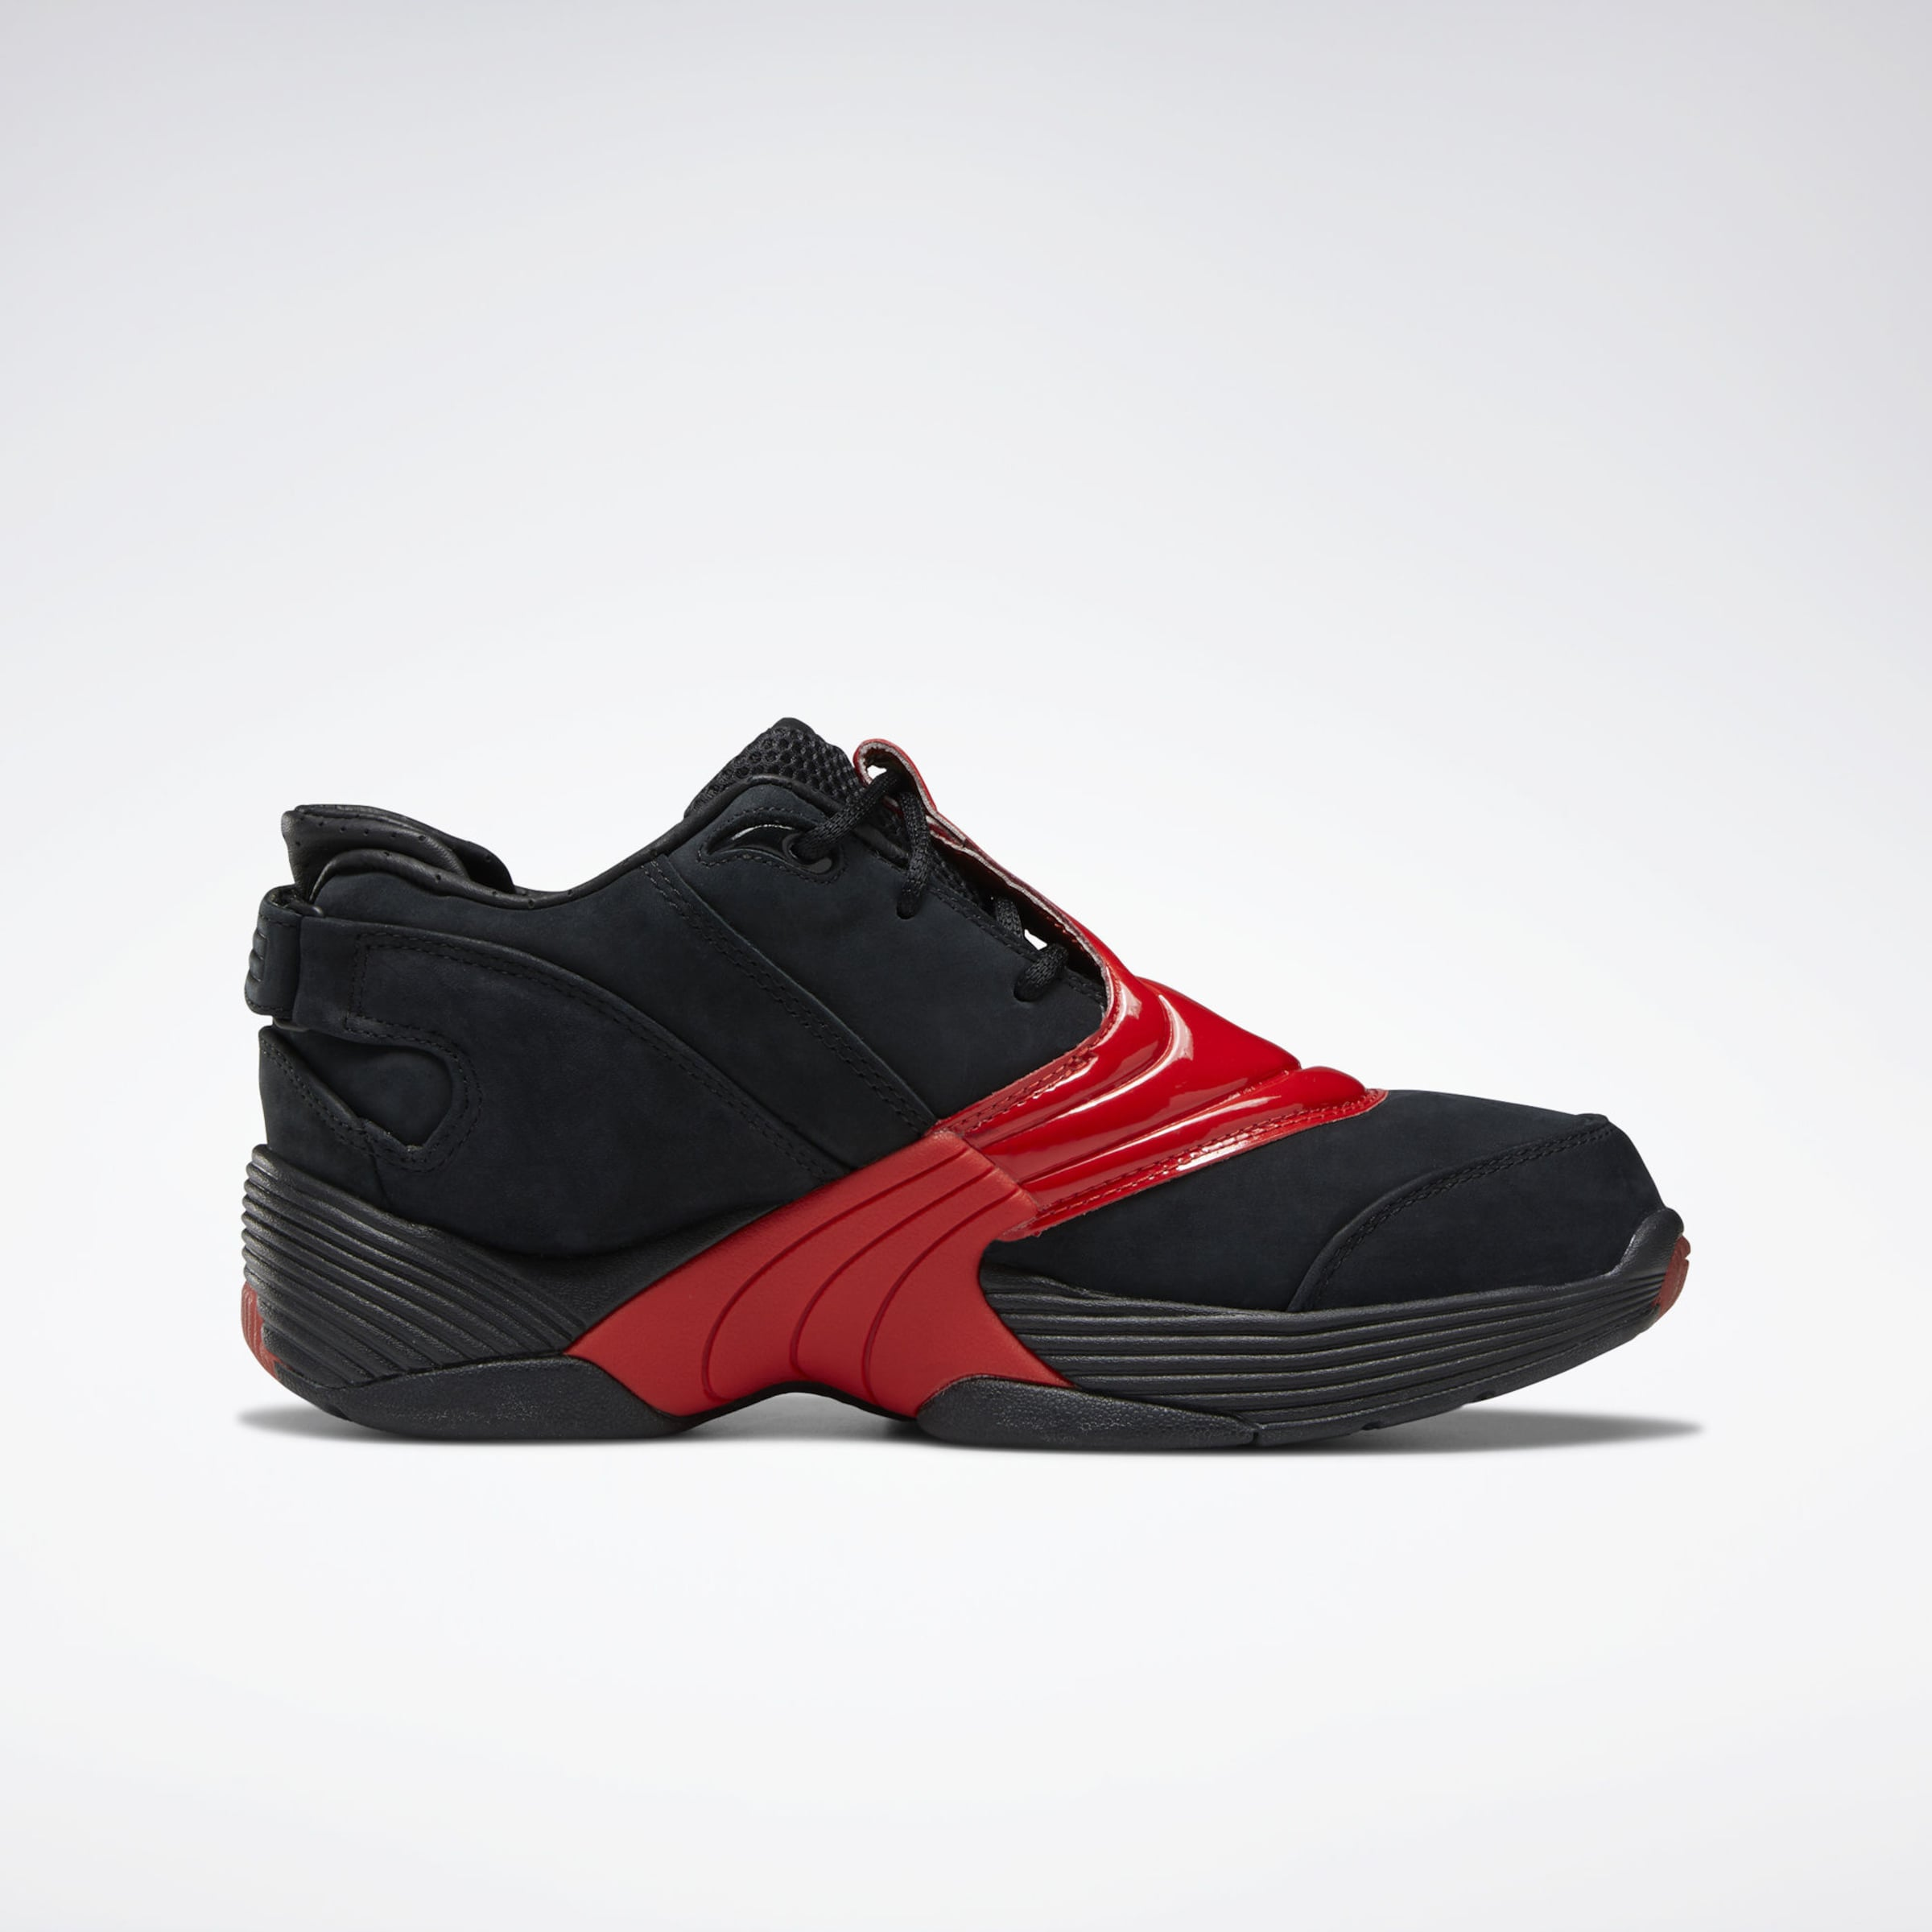 In Reebok V Classic Answer RotSchwarz ' Shoes 4LScAR5jq3